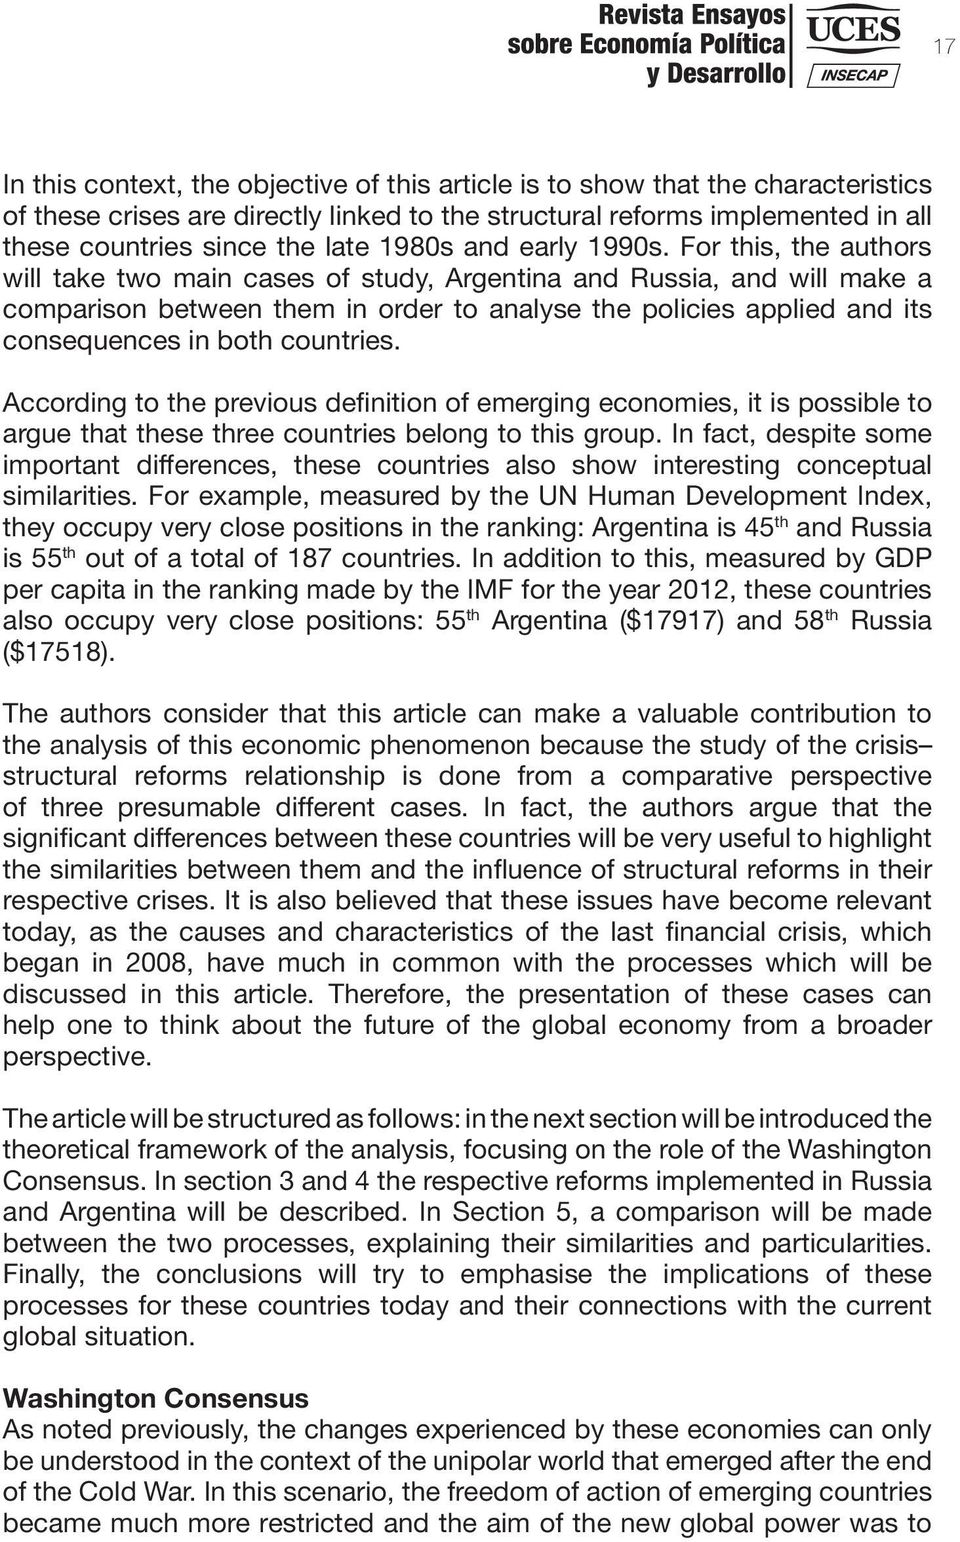 For this, the authors will take two main cases of study, Argentina and Russia, and will make a comparison between them in order to analyse the policies applied and its consequences in both countries.